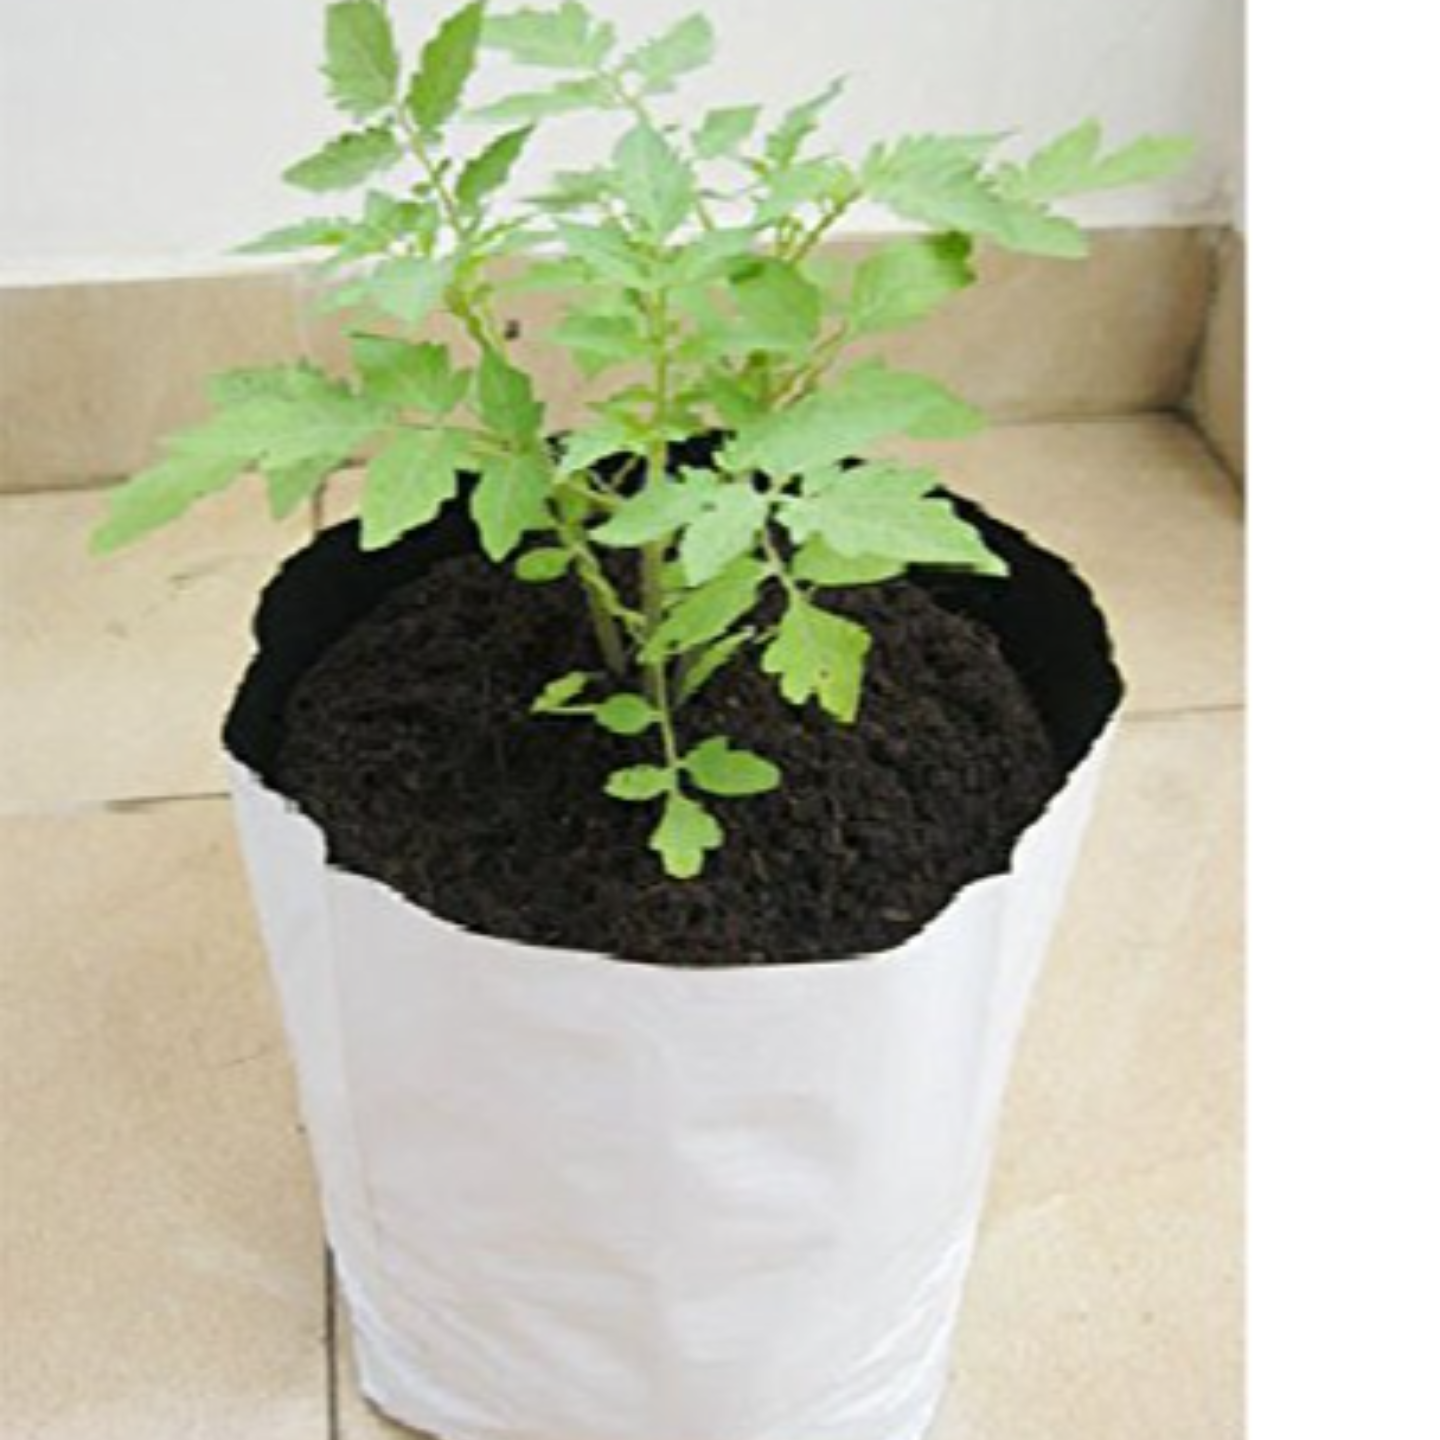 Growbags 28 x 28 x 60cm (set of 10)